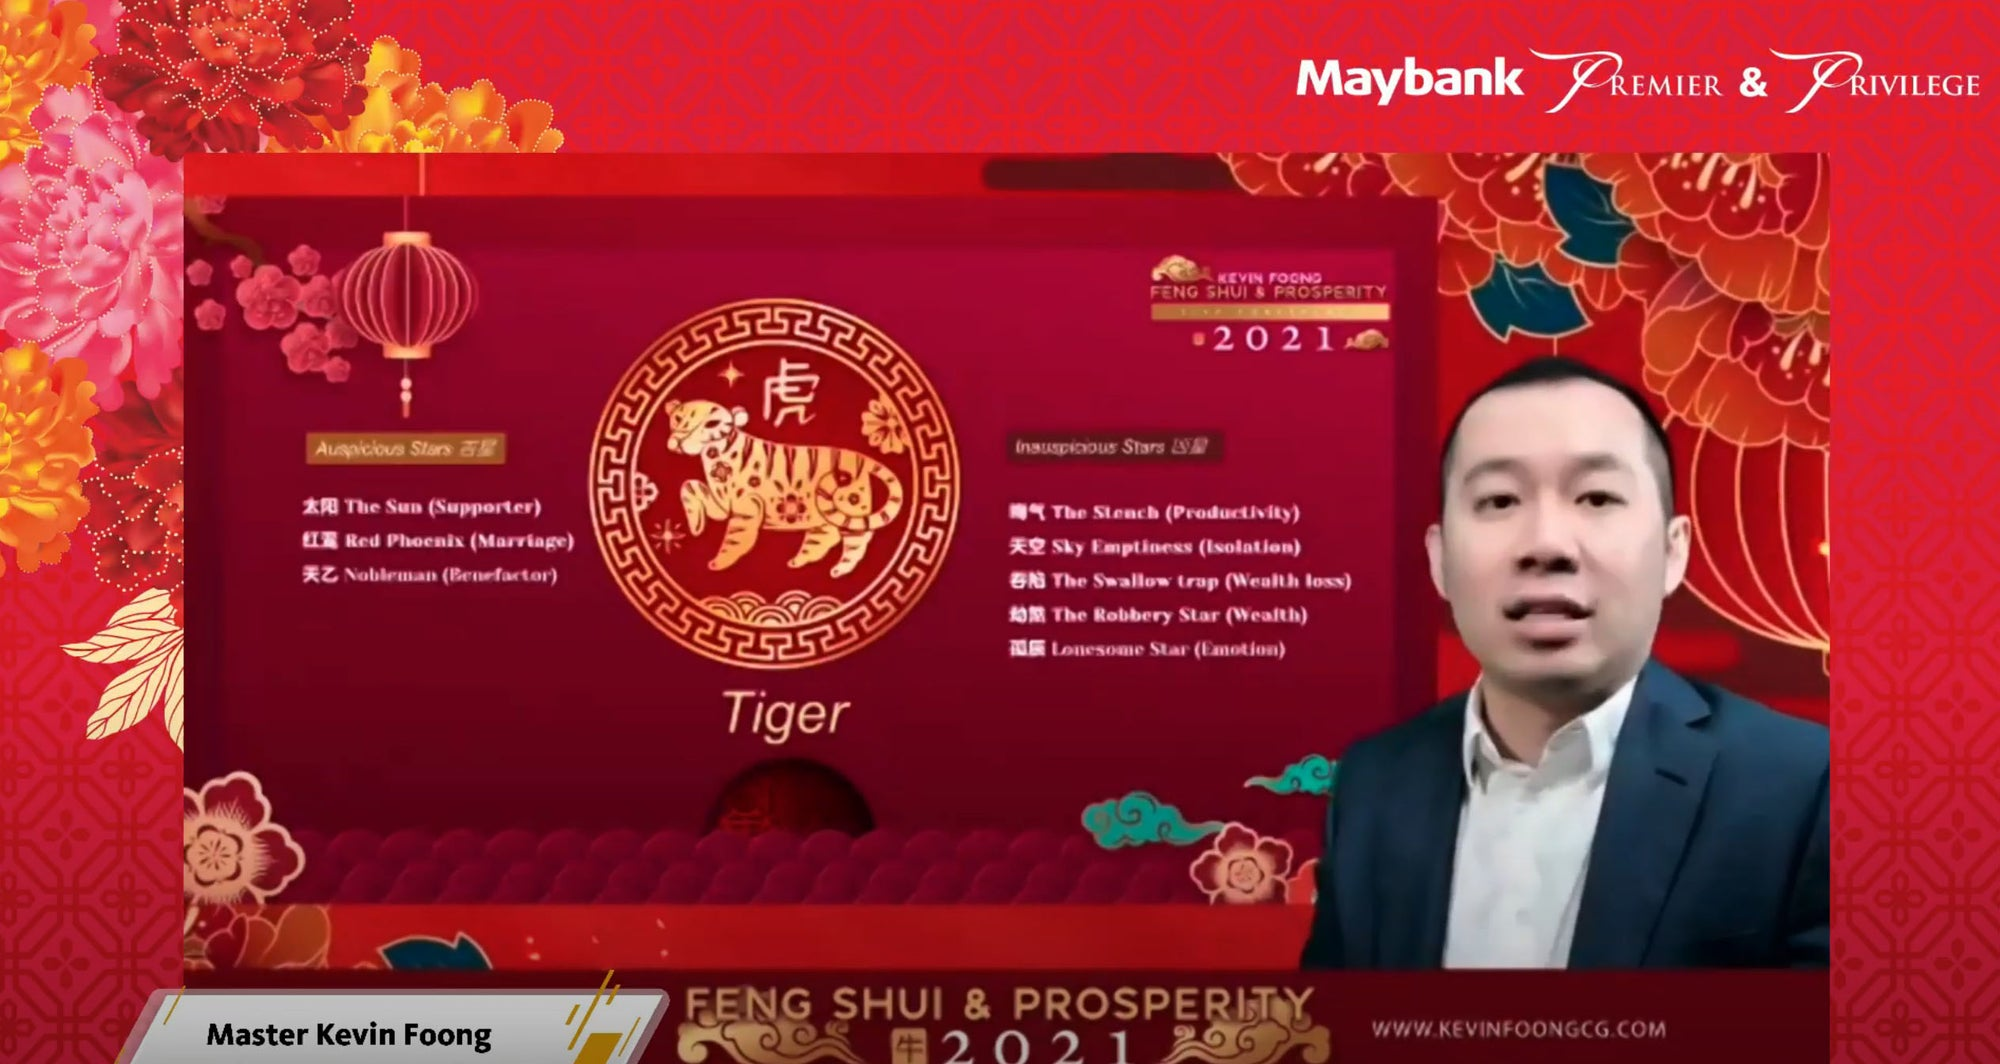 2021 Feng Shui & Prosperity Online Seminar for Maybank Premier & Privilege Malaysia